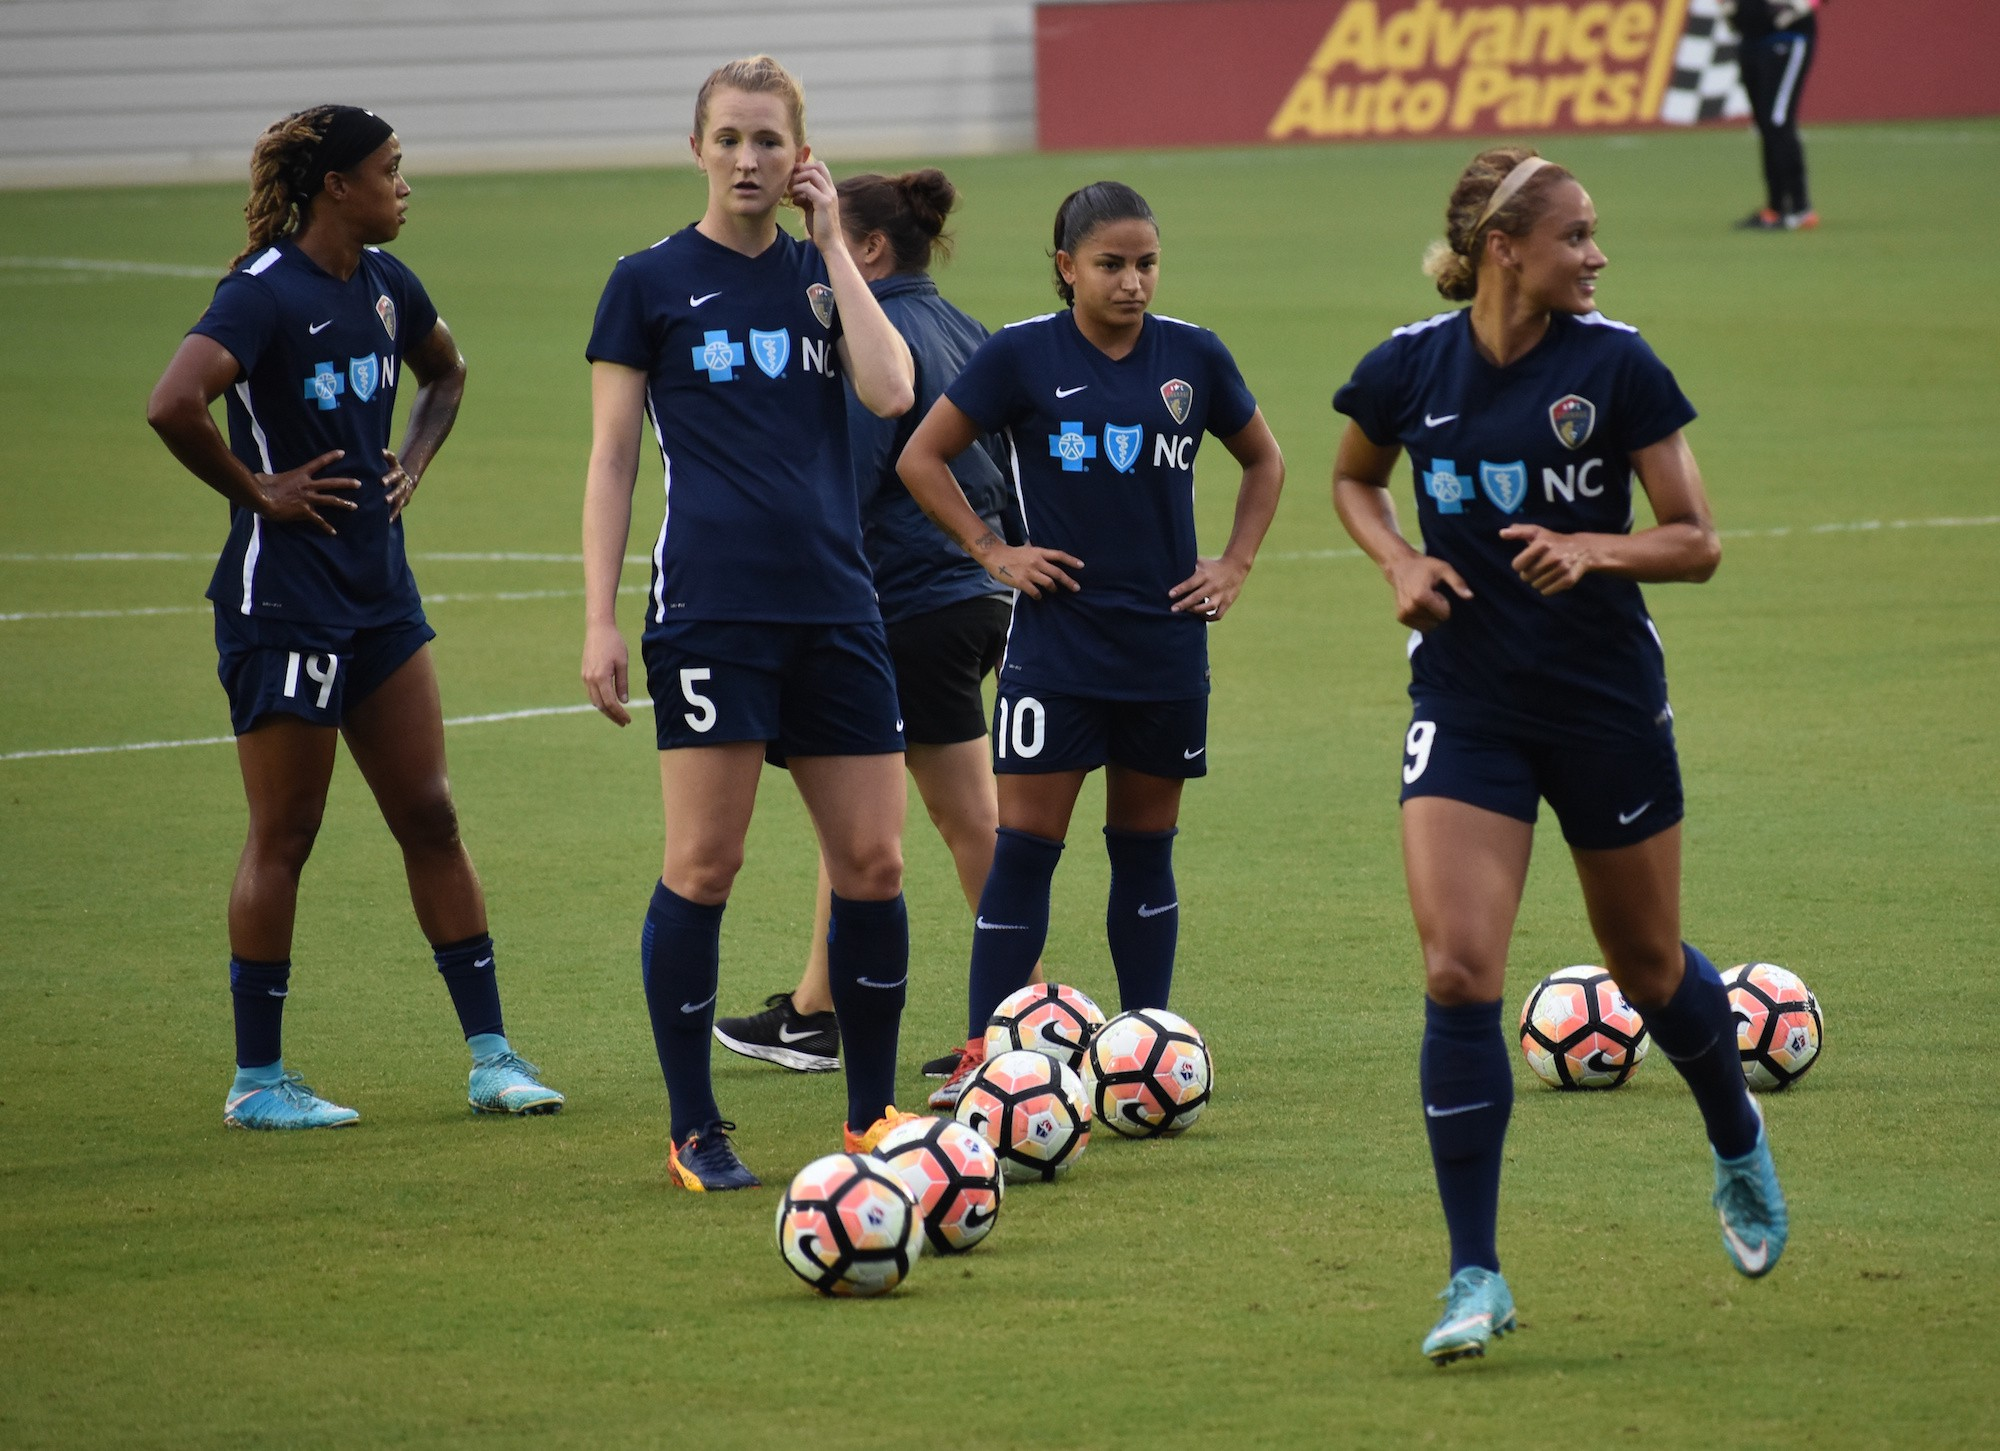 The North Carolina Courage clinch playoff spot with a win